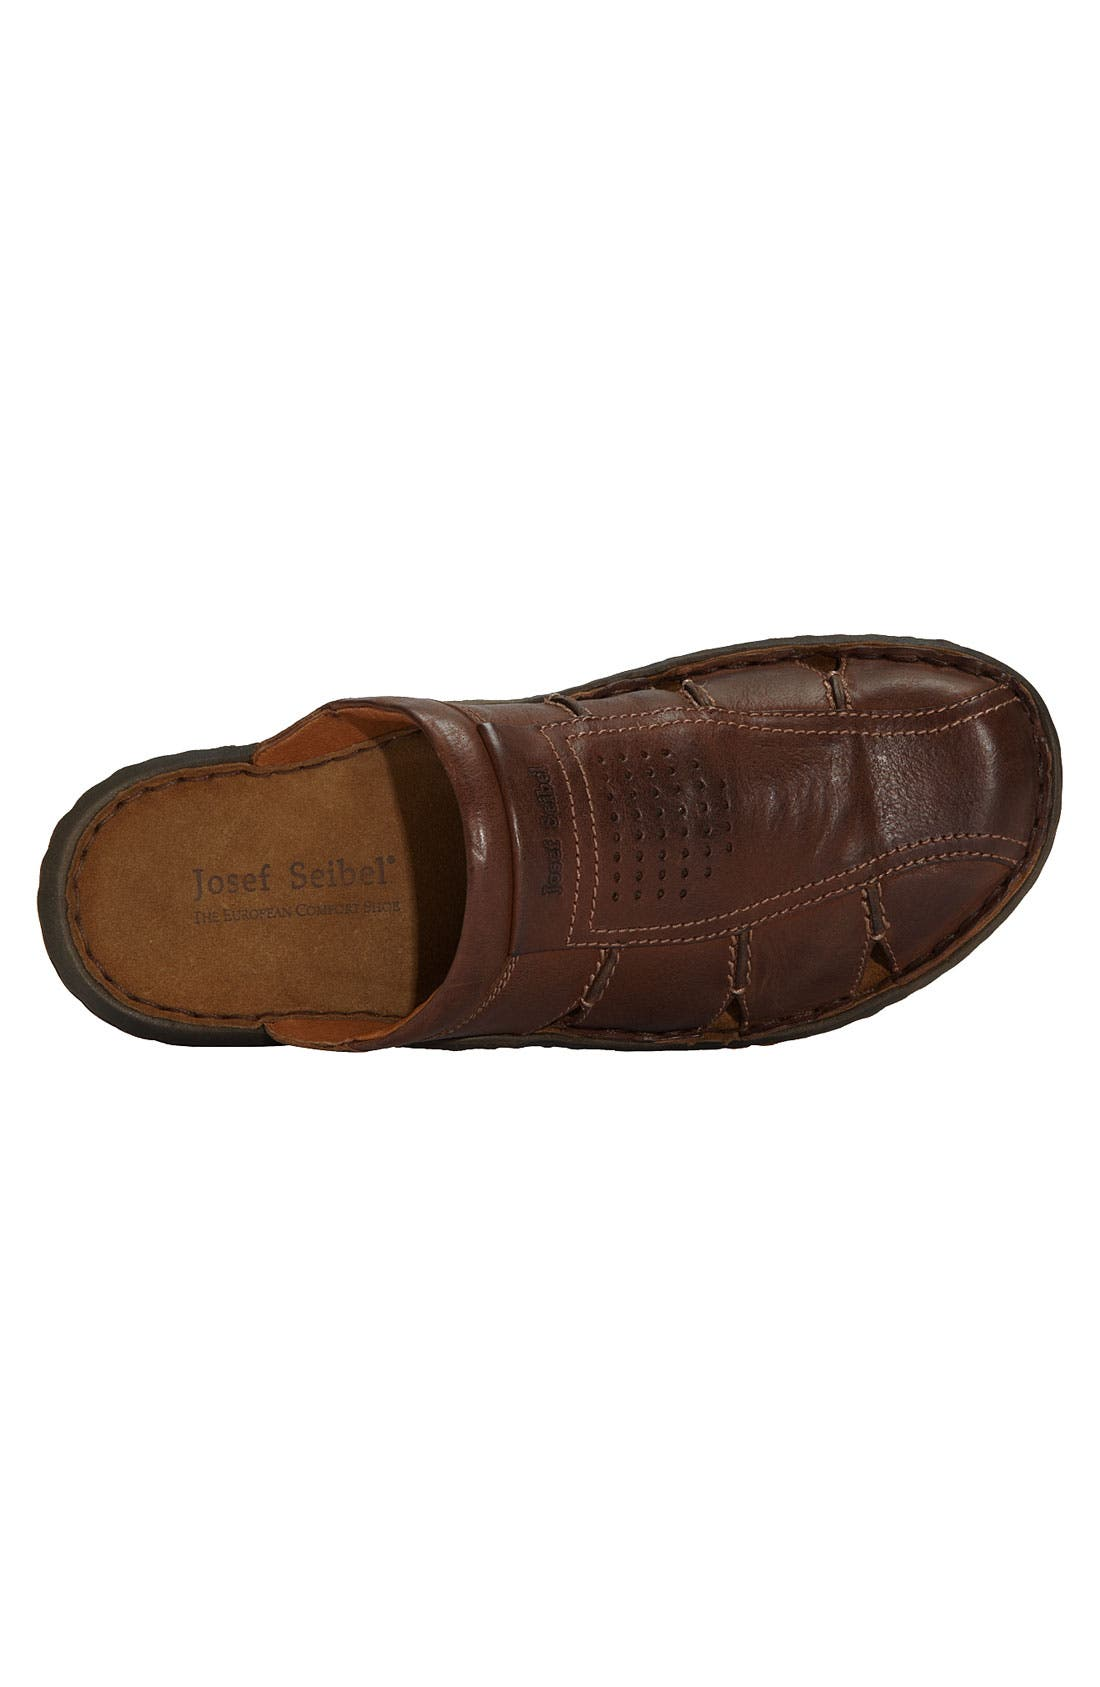 Alternate Image 3  - Josef Seibel 'Lawson' Clog Sandal